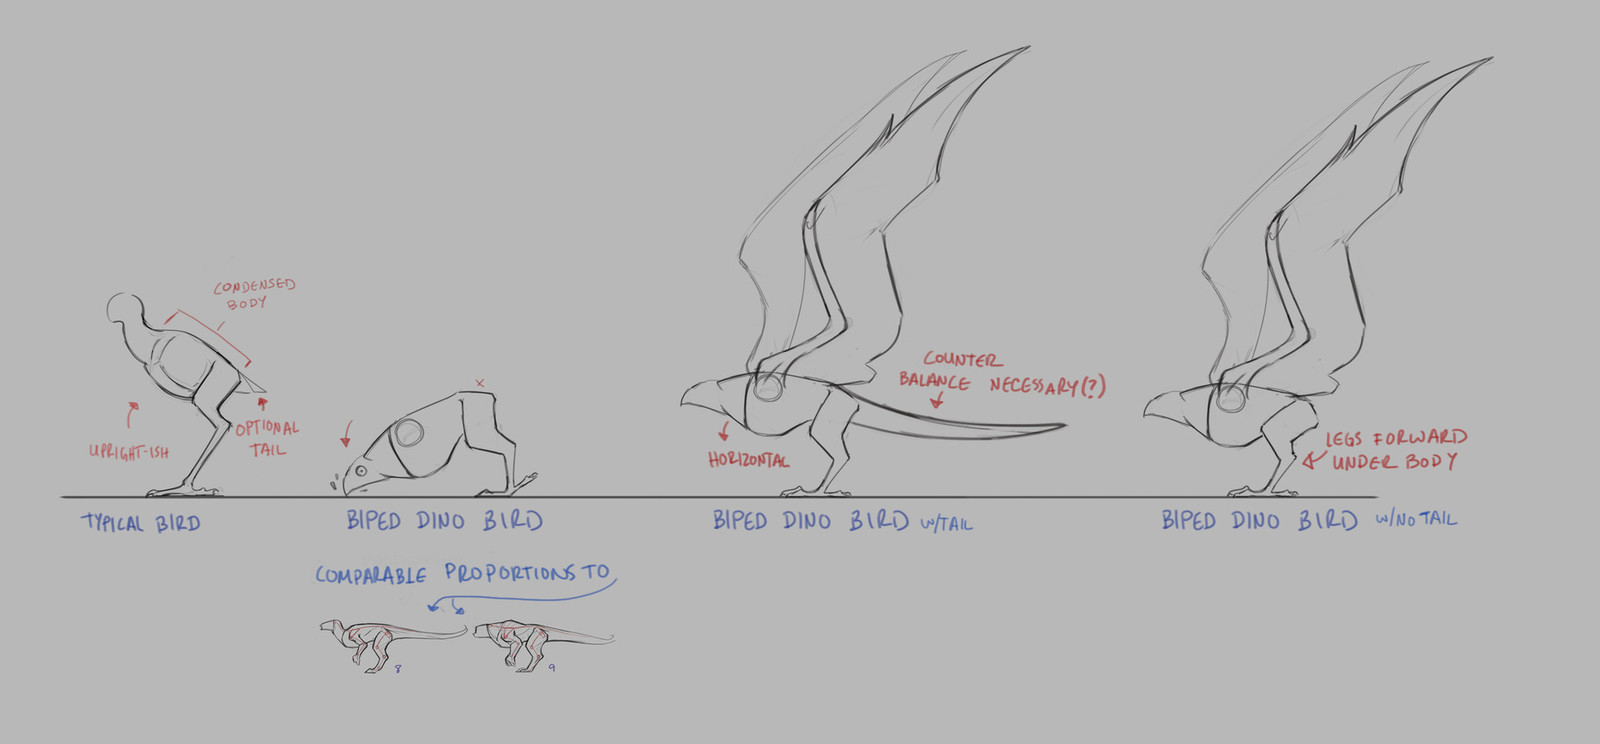 A quick note on thoughts I was having about bird anatomy versus dino anatomy. The inclusion of a tail for counter-balancing would require an adjustment for where the legs rested under the body.